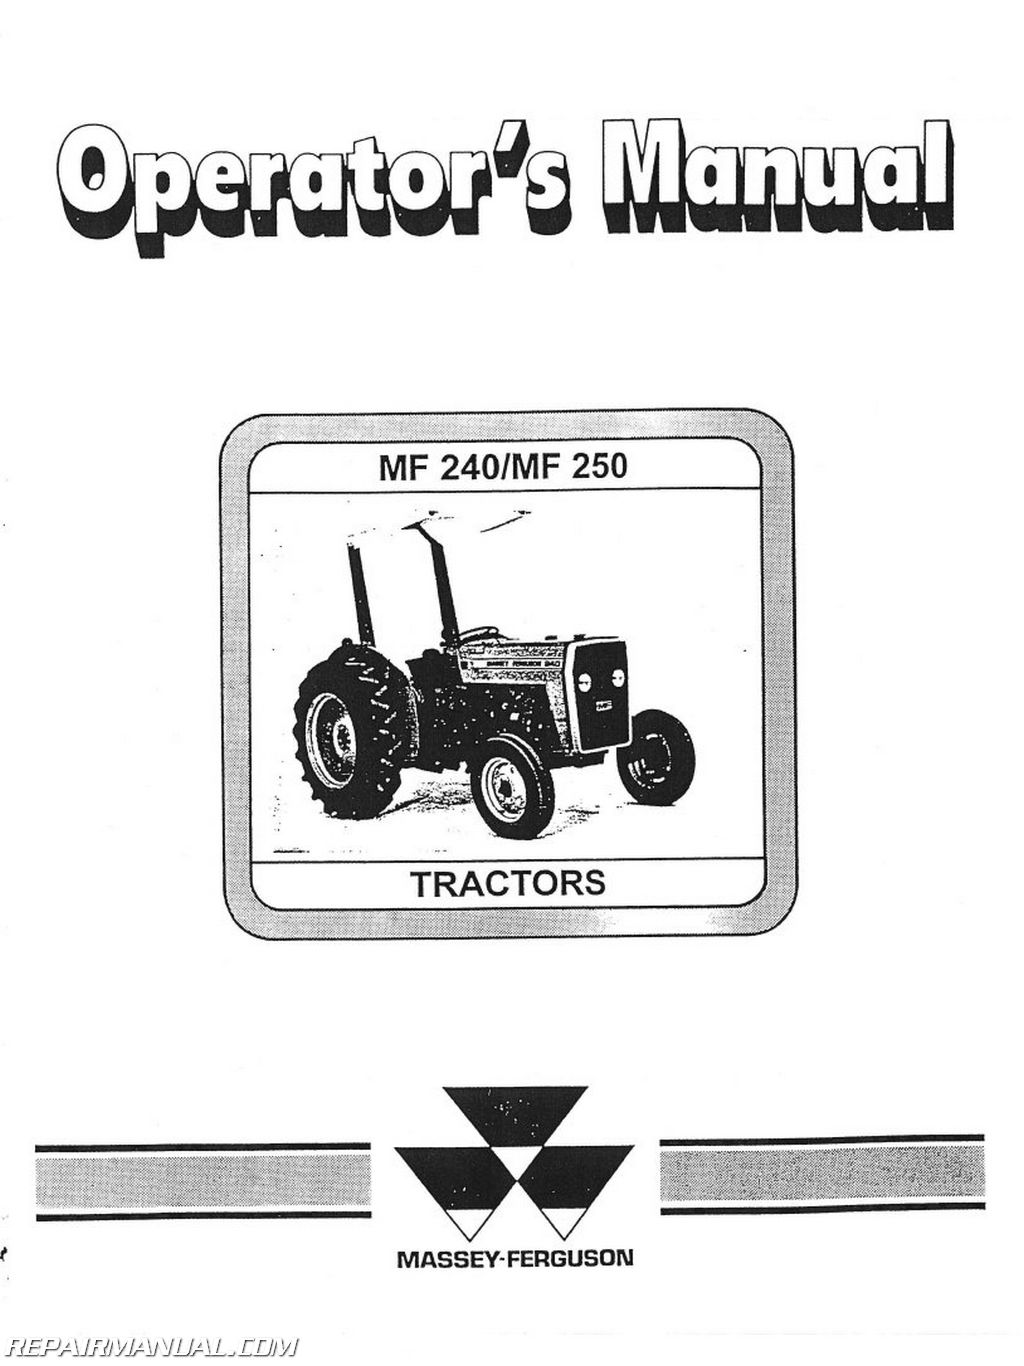 Massey Ferguson 250 Tractor Wiring Diagram Modern Design Of 135 Mf240 And Operators Manual Rh Repairmanual Com Diesel Diagrams